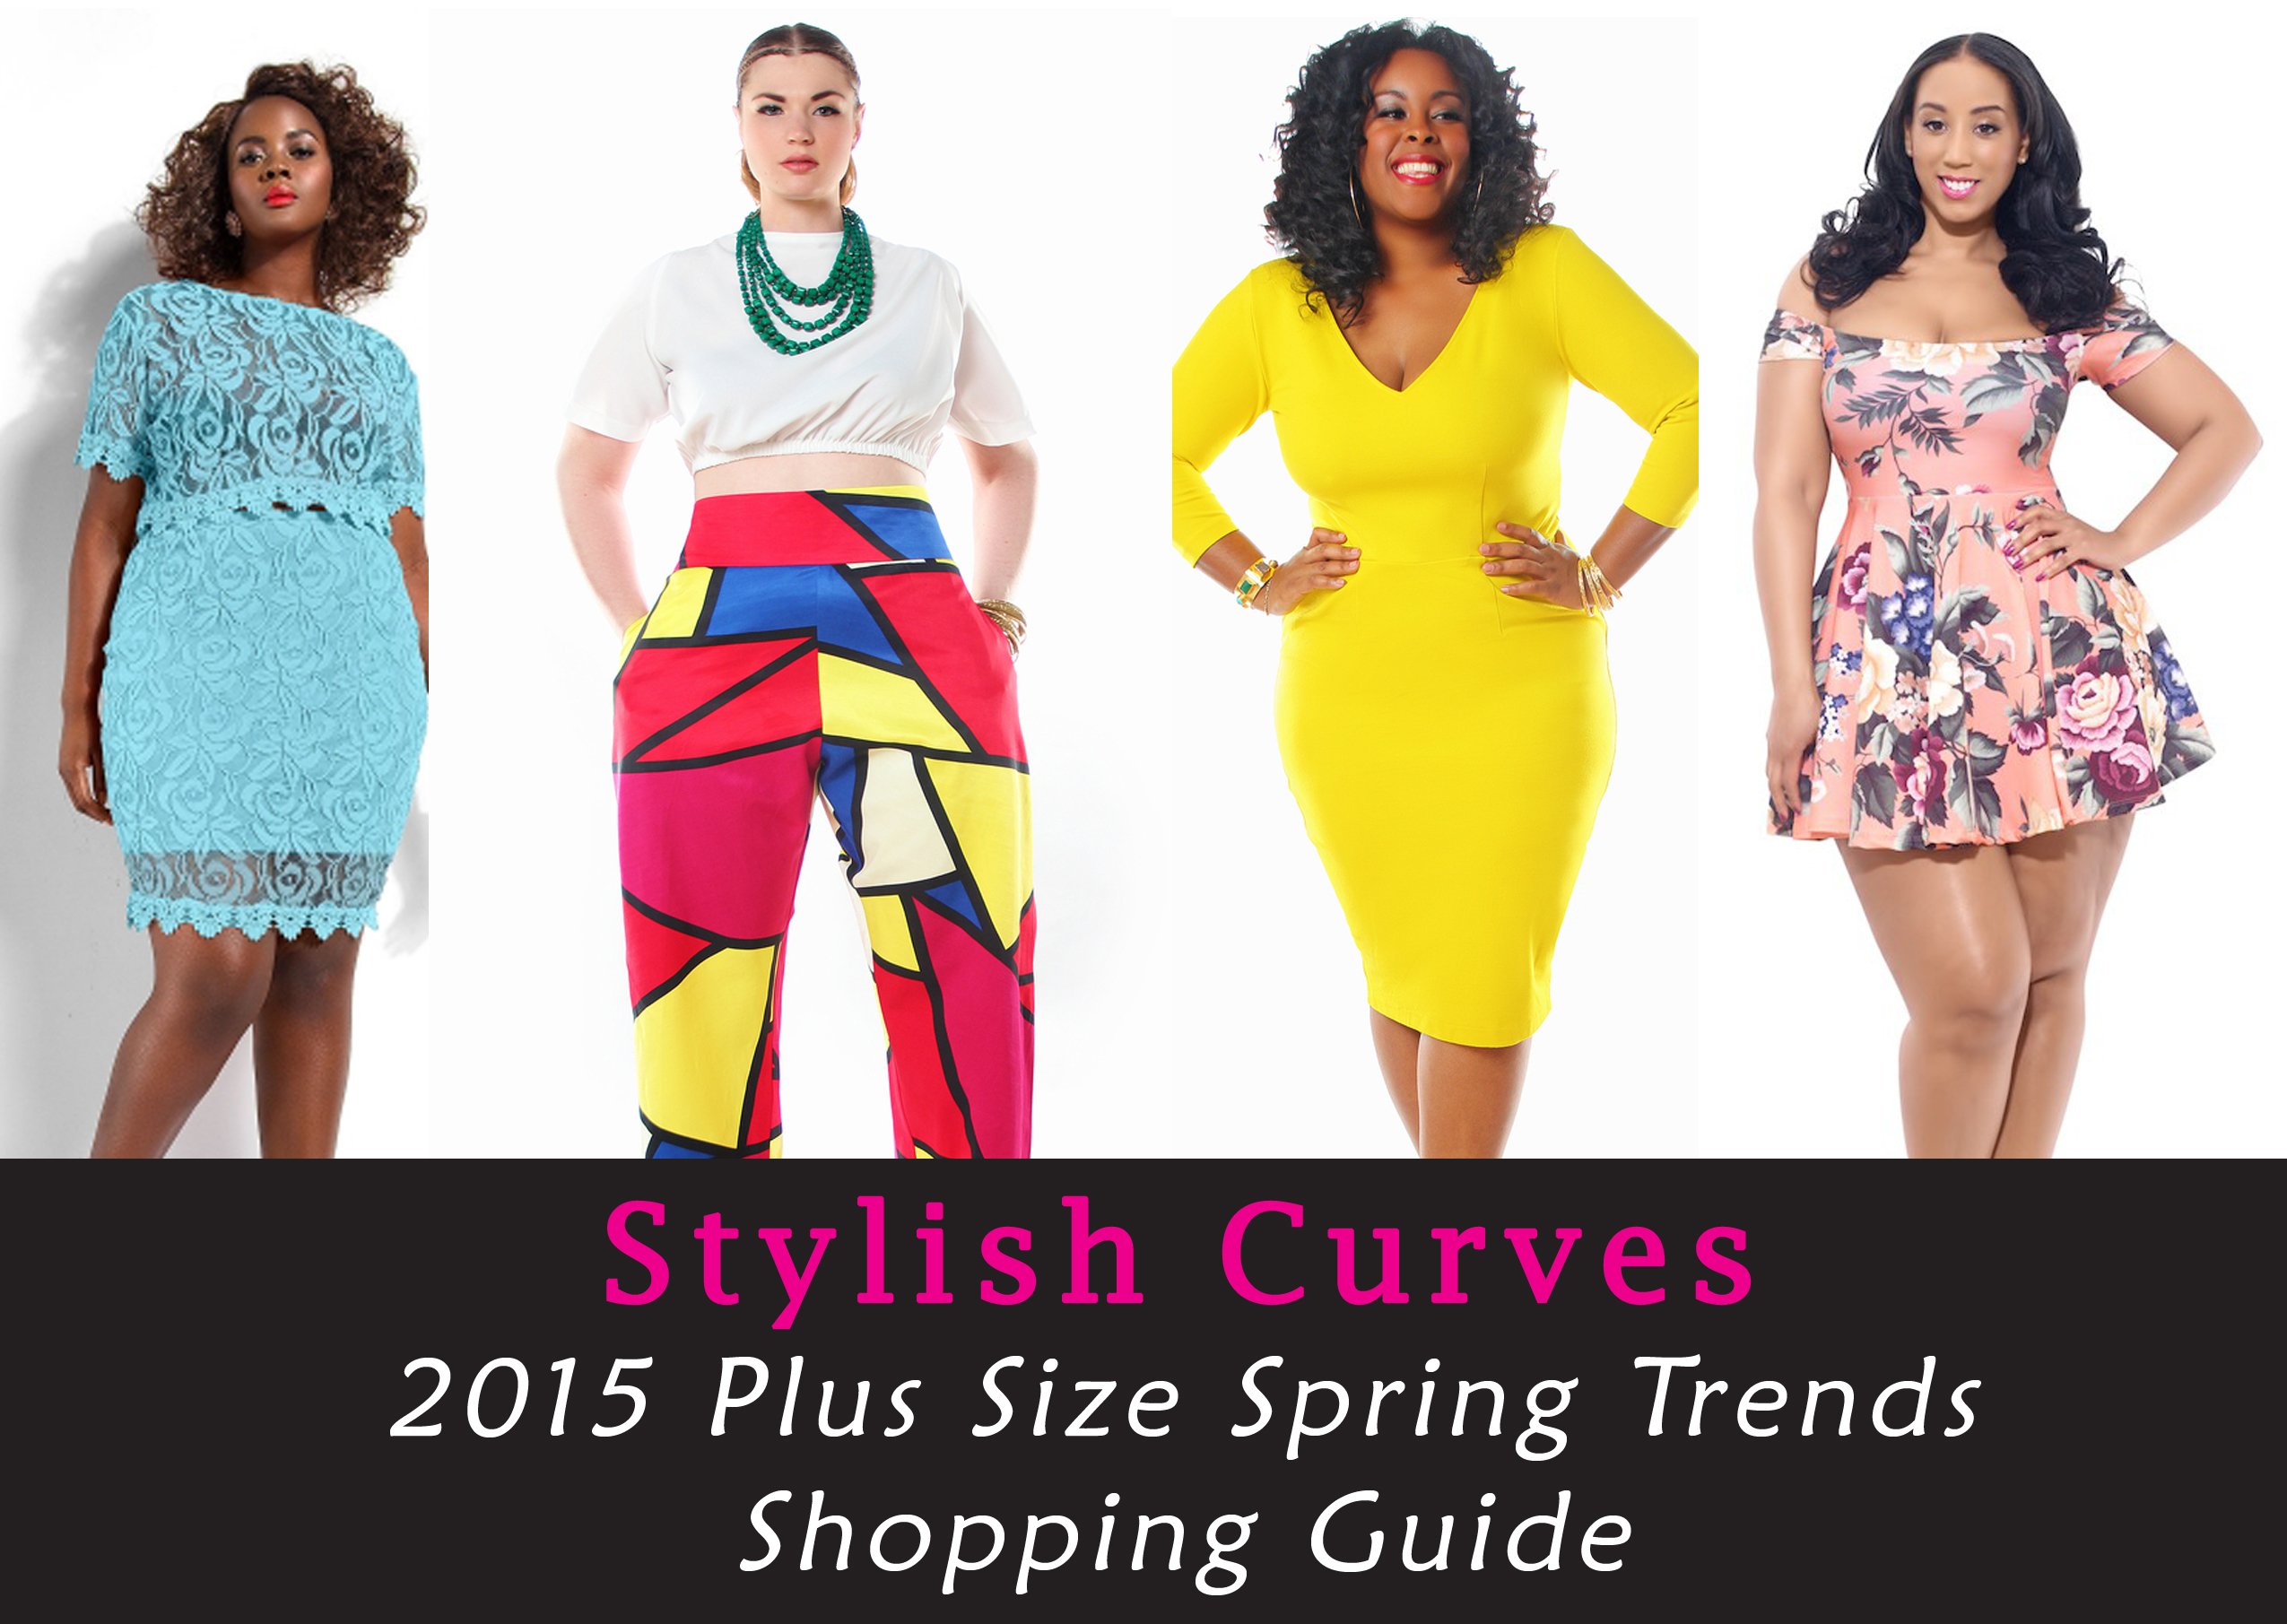 Our 2015 Plus Size Spring Trend Shopping Guide Is Here